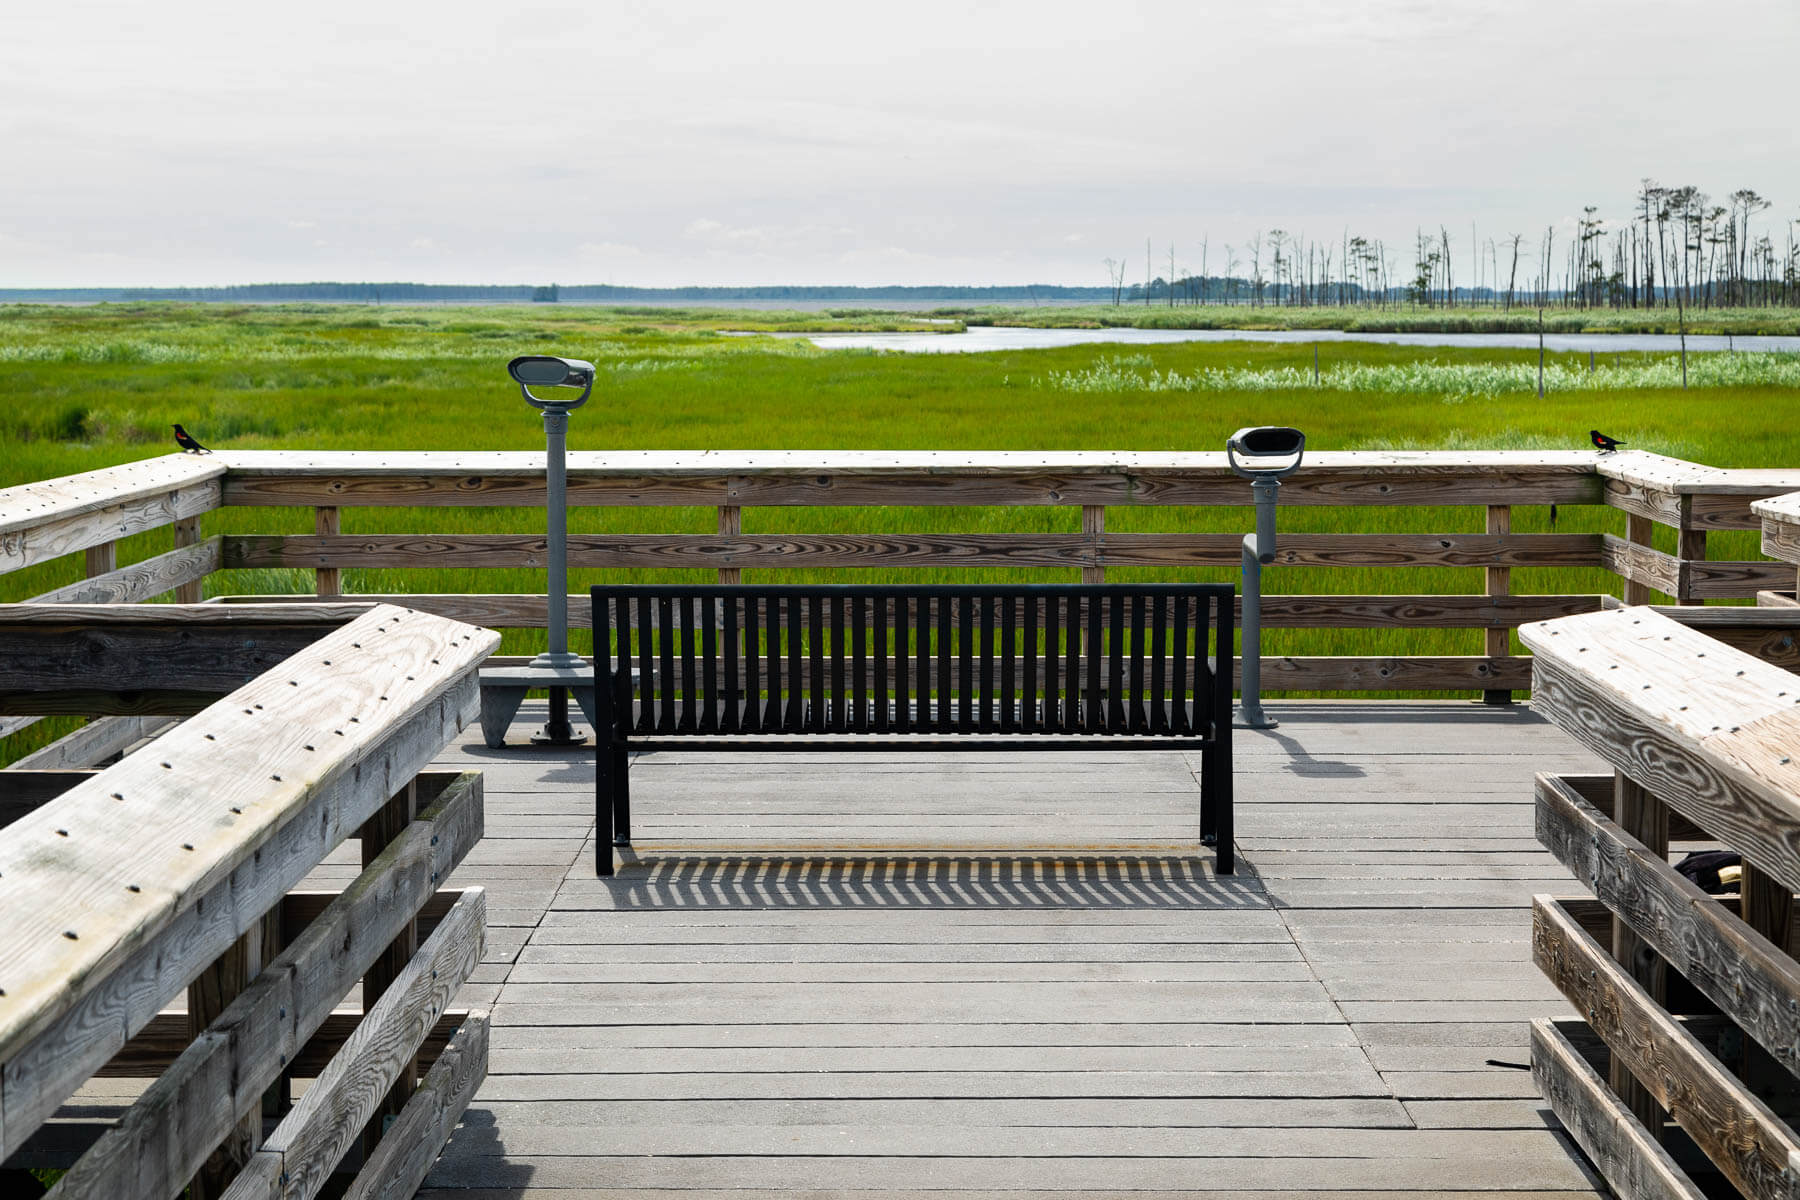 Observation bench facing an expanse of wetland.